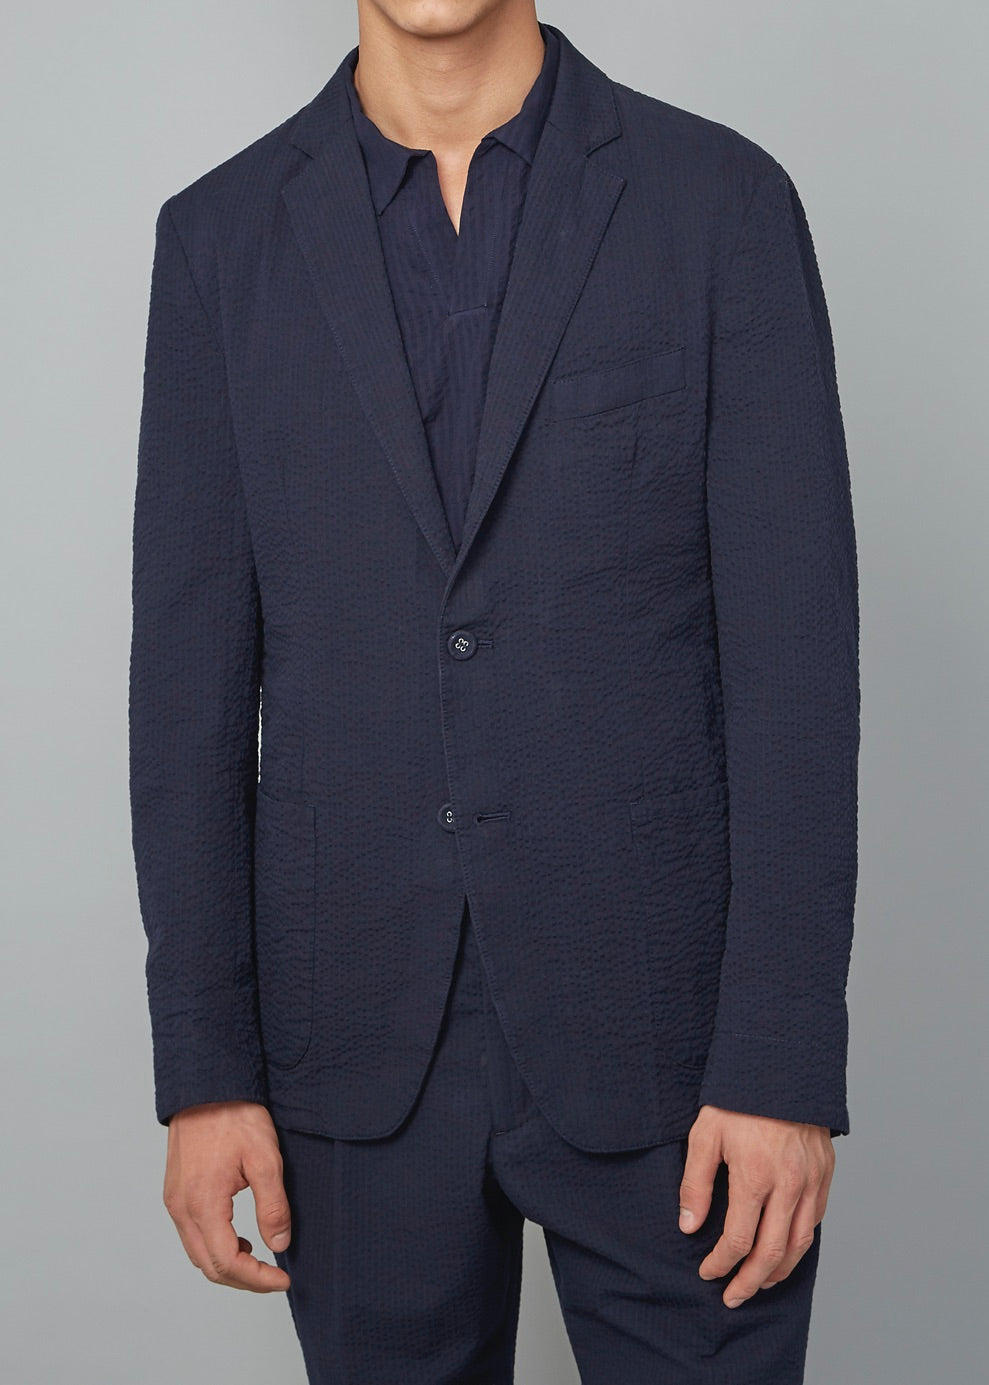 Lightest Seersucker Jacket Navy